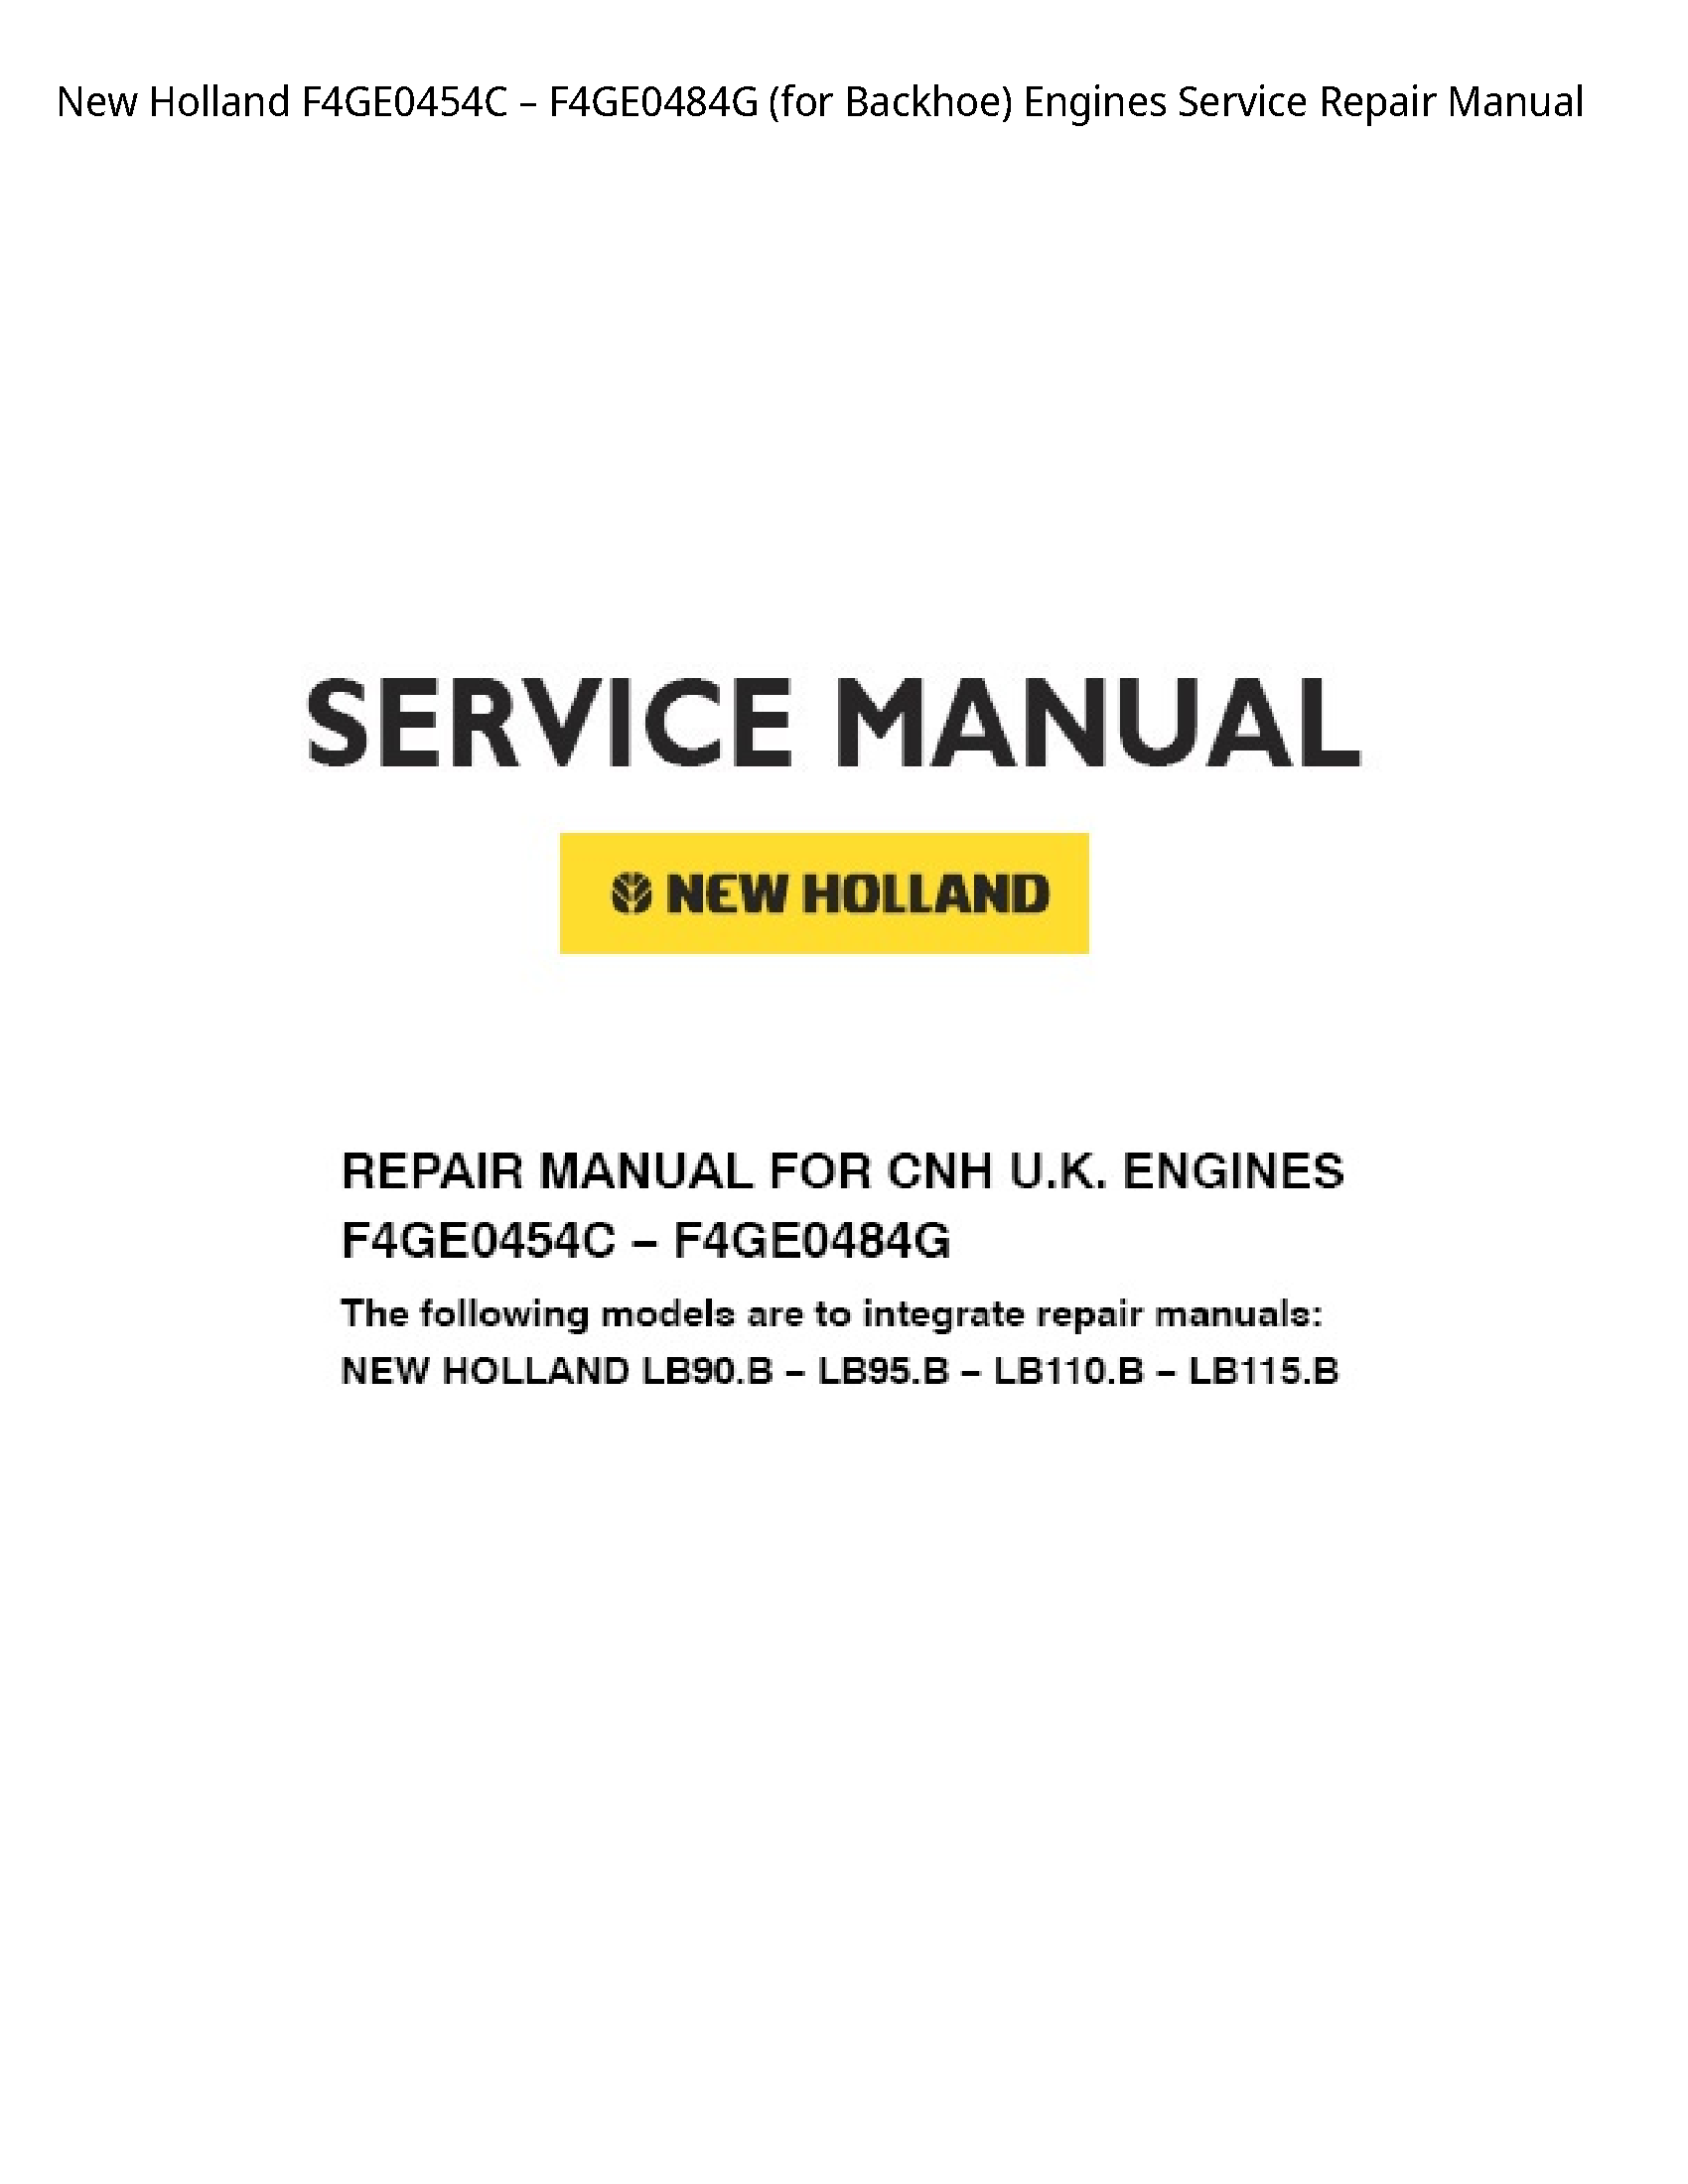 New Holland F4GE0454C (for Backhoe) Engines manual